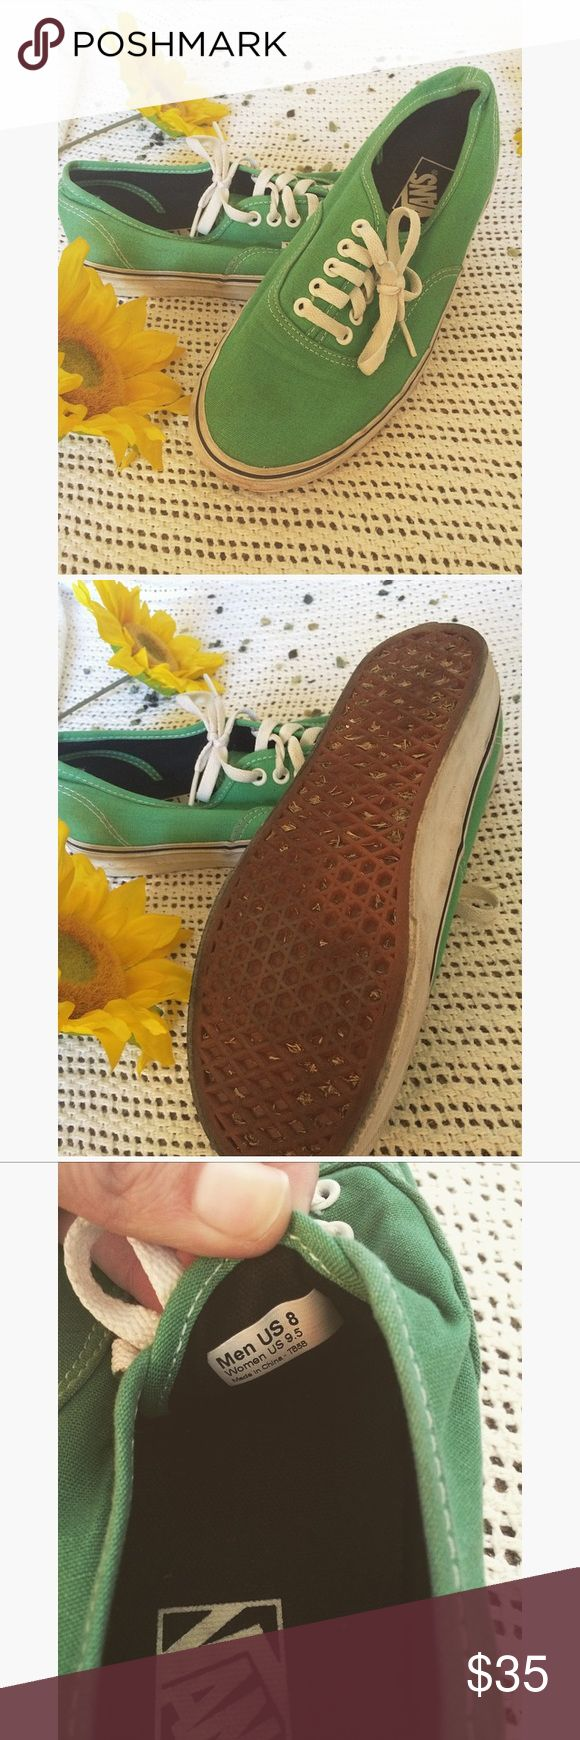 🌻 green vans, for men or women🌻 🌻 these vans are unisex. Barely even worn as you can see in the second picture . Cool green color, in great condition. Size 9.5 in women's, and 8 in men🌻 Vans Shoes Sneakers